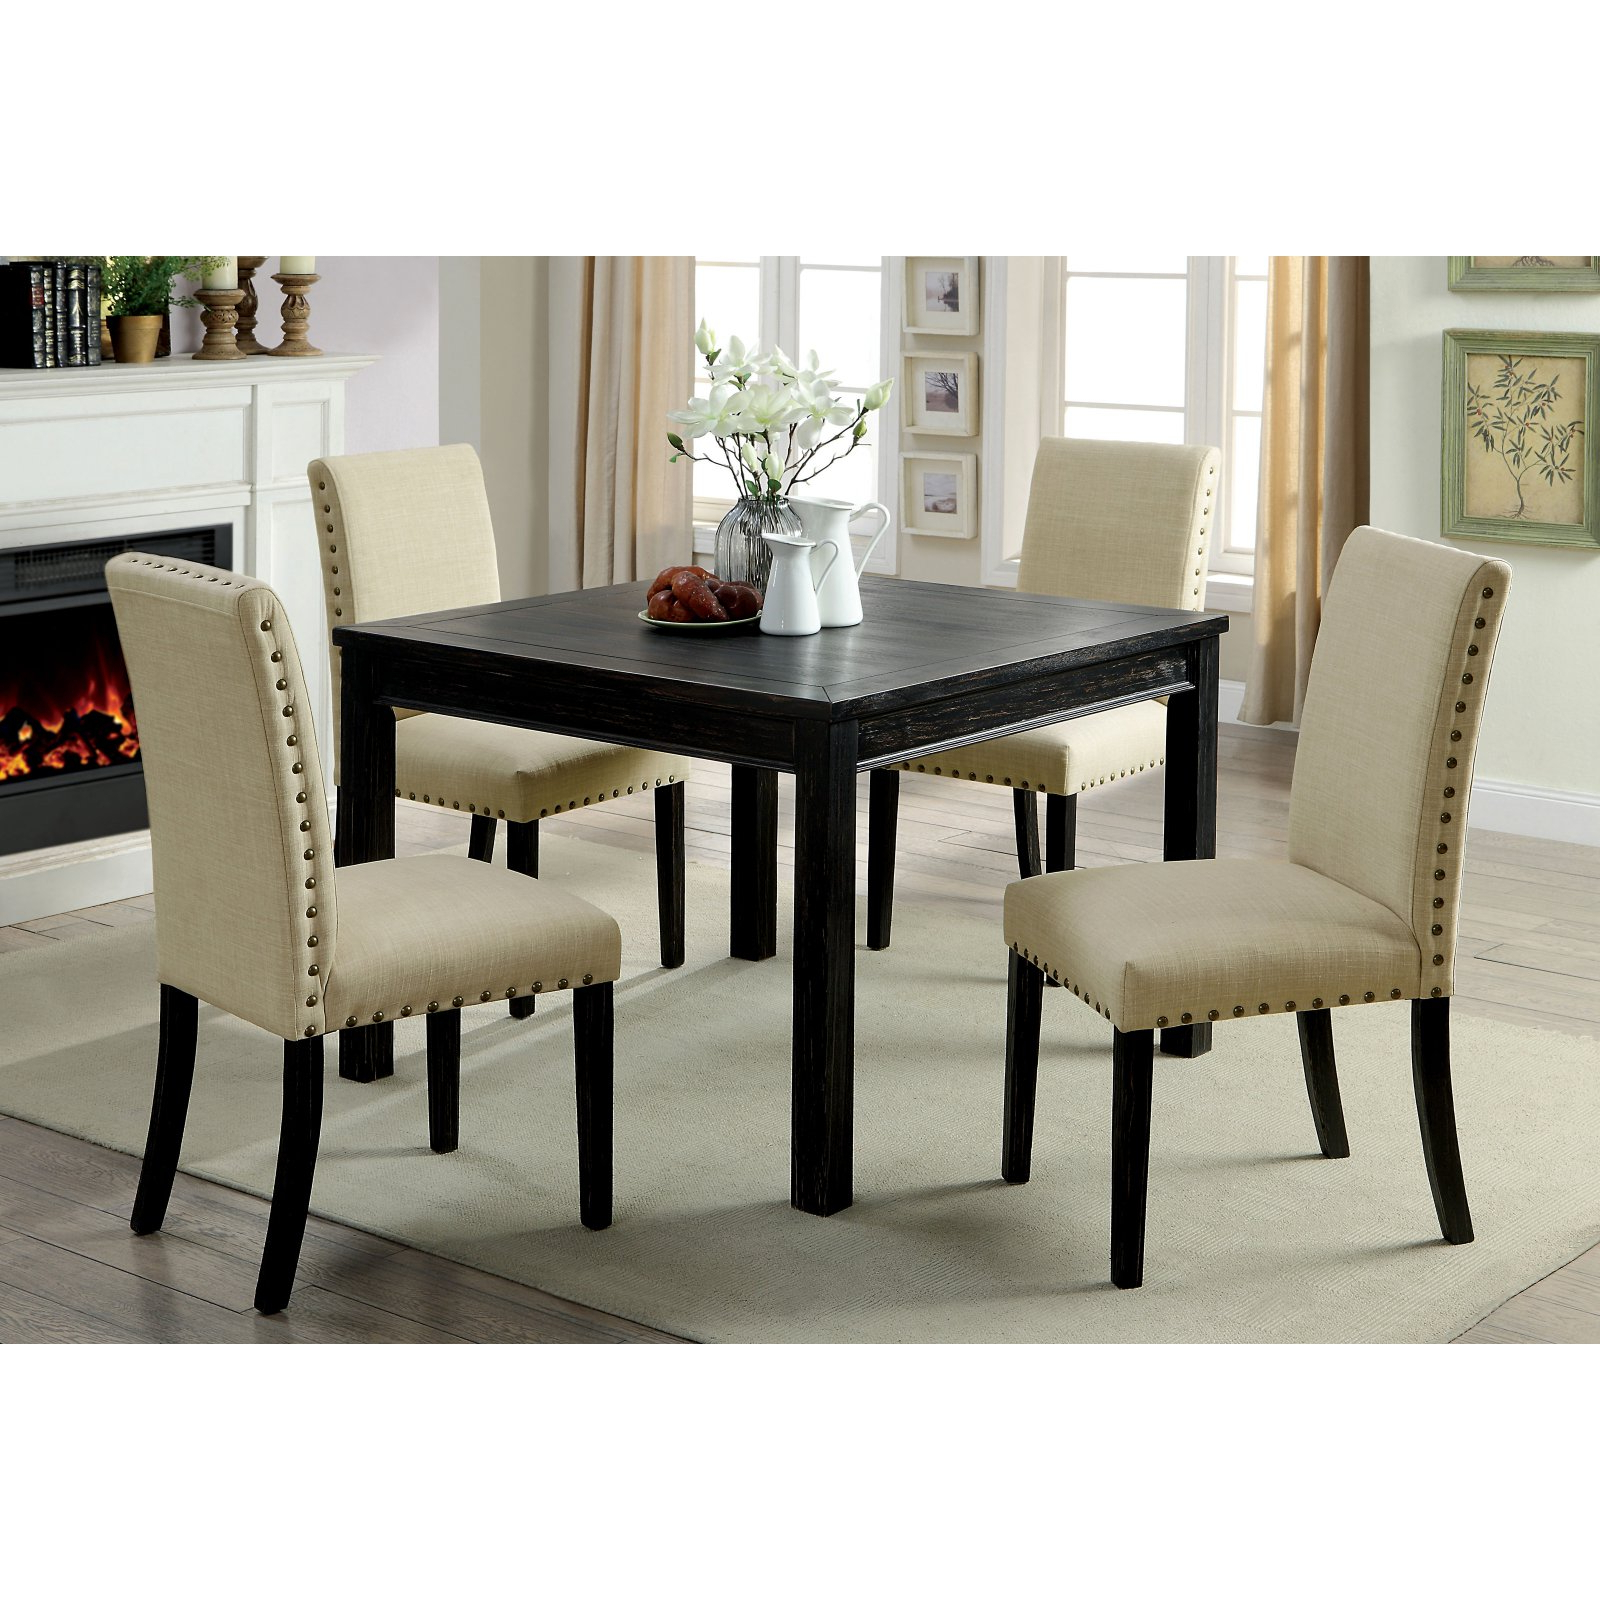 Favorite Ephraim 5 Piece Dining Sets Intended For Furniture Of America Verdugo 5 Piece Rustic Dining Table Set (View 9 of 25)